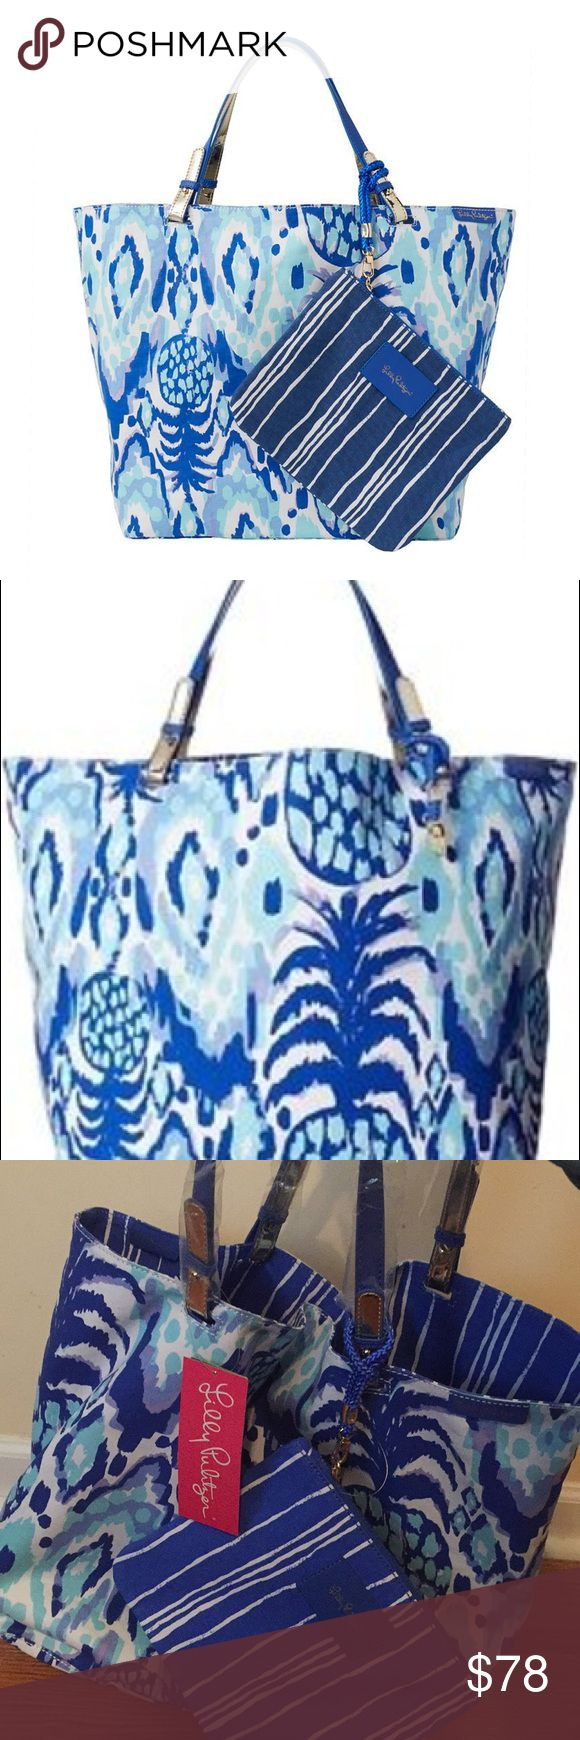 Lilly Pulitzer Beach Bathers Reversible Bag 🌸 A brand new Lilly Pulitzer Beach Bather Reversible bag (Tropi Call Me). When you can't decide, this REVERSIBLE bag is your answer! Take this bag with you on your next journey or adventure. It also comes with another bag ( that you can remove at any time) that you can keep your personal items in. This bag defines amazing! 🌸 Lilly Pulitzer Bags